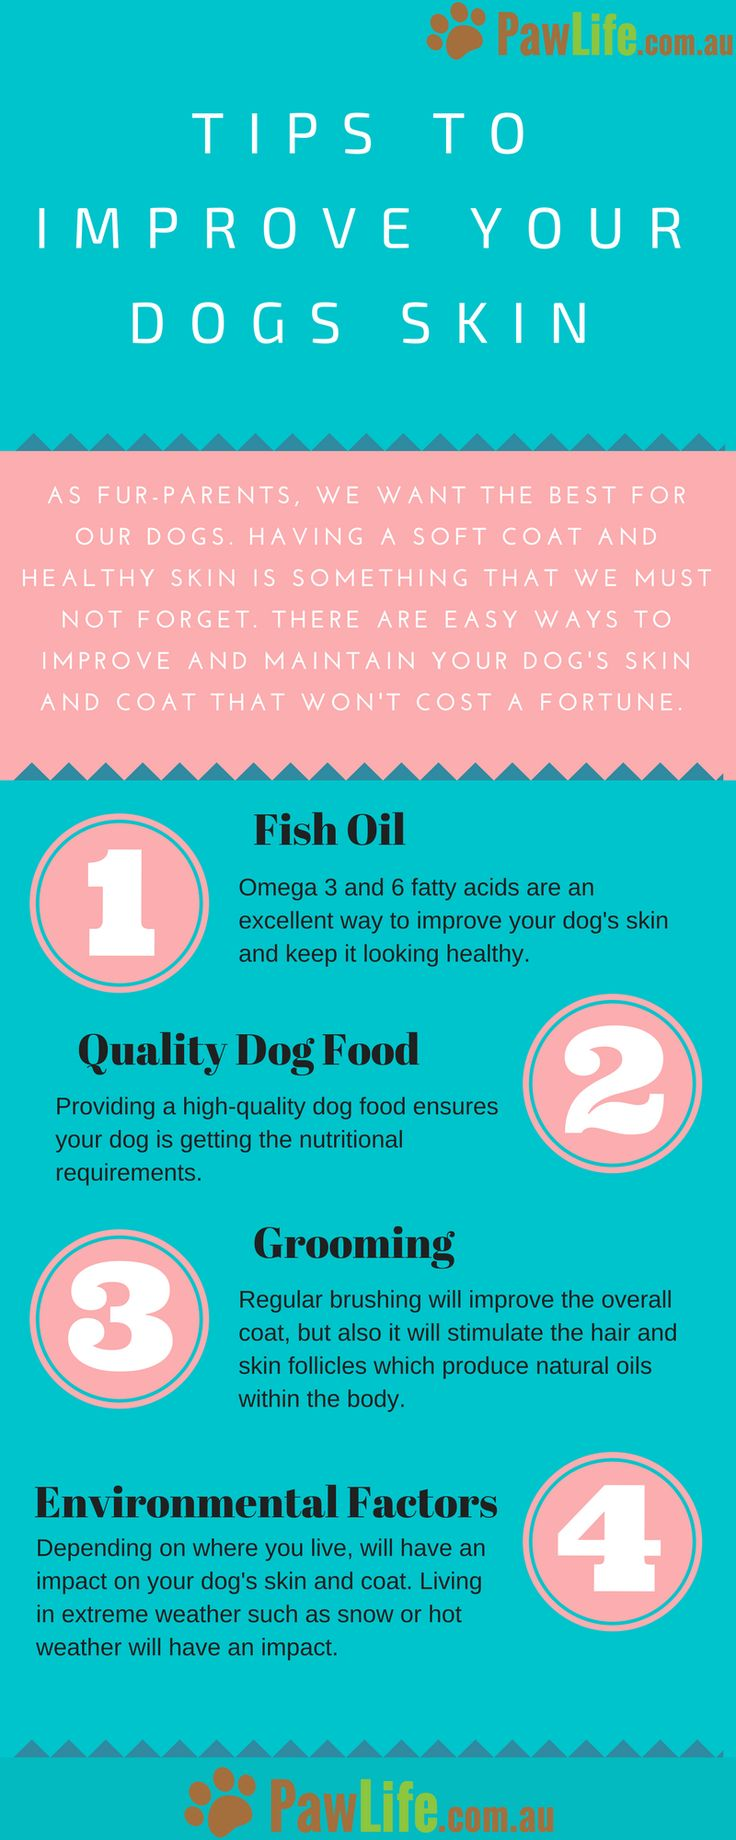 There are easy ways to improve your dog's skin and coat that won't cost a fortune.